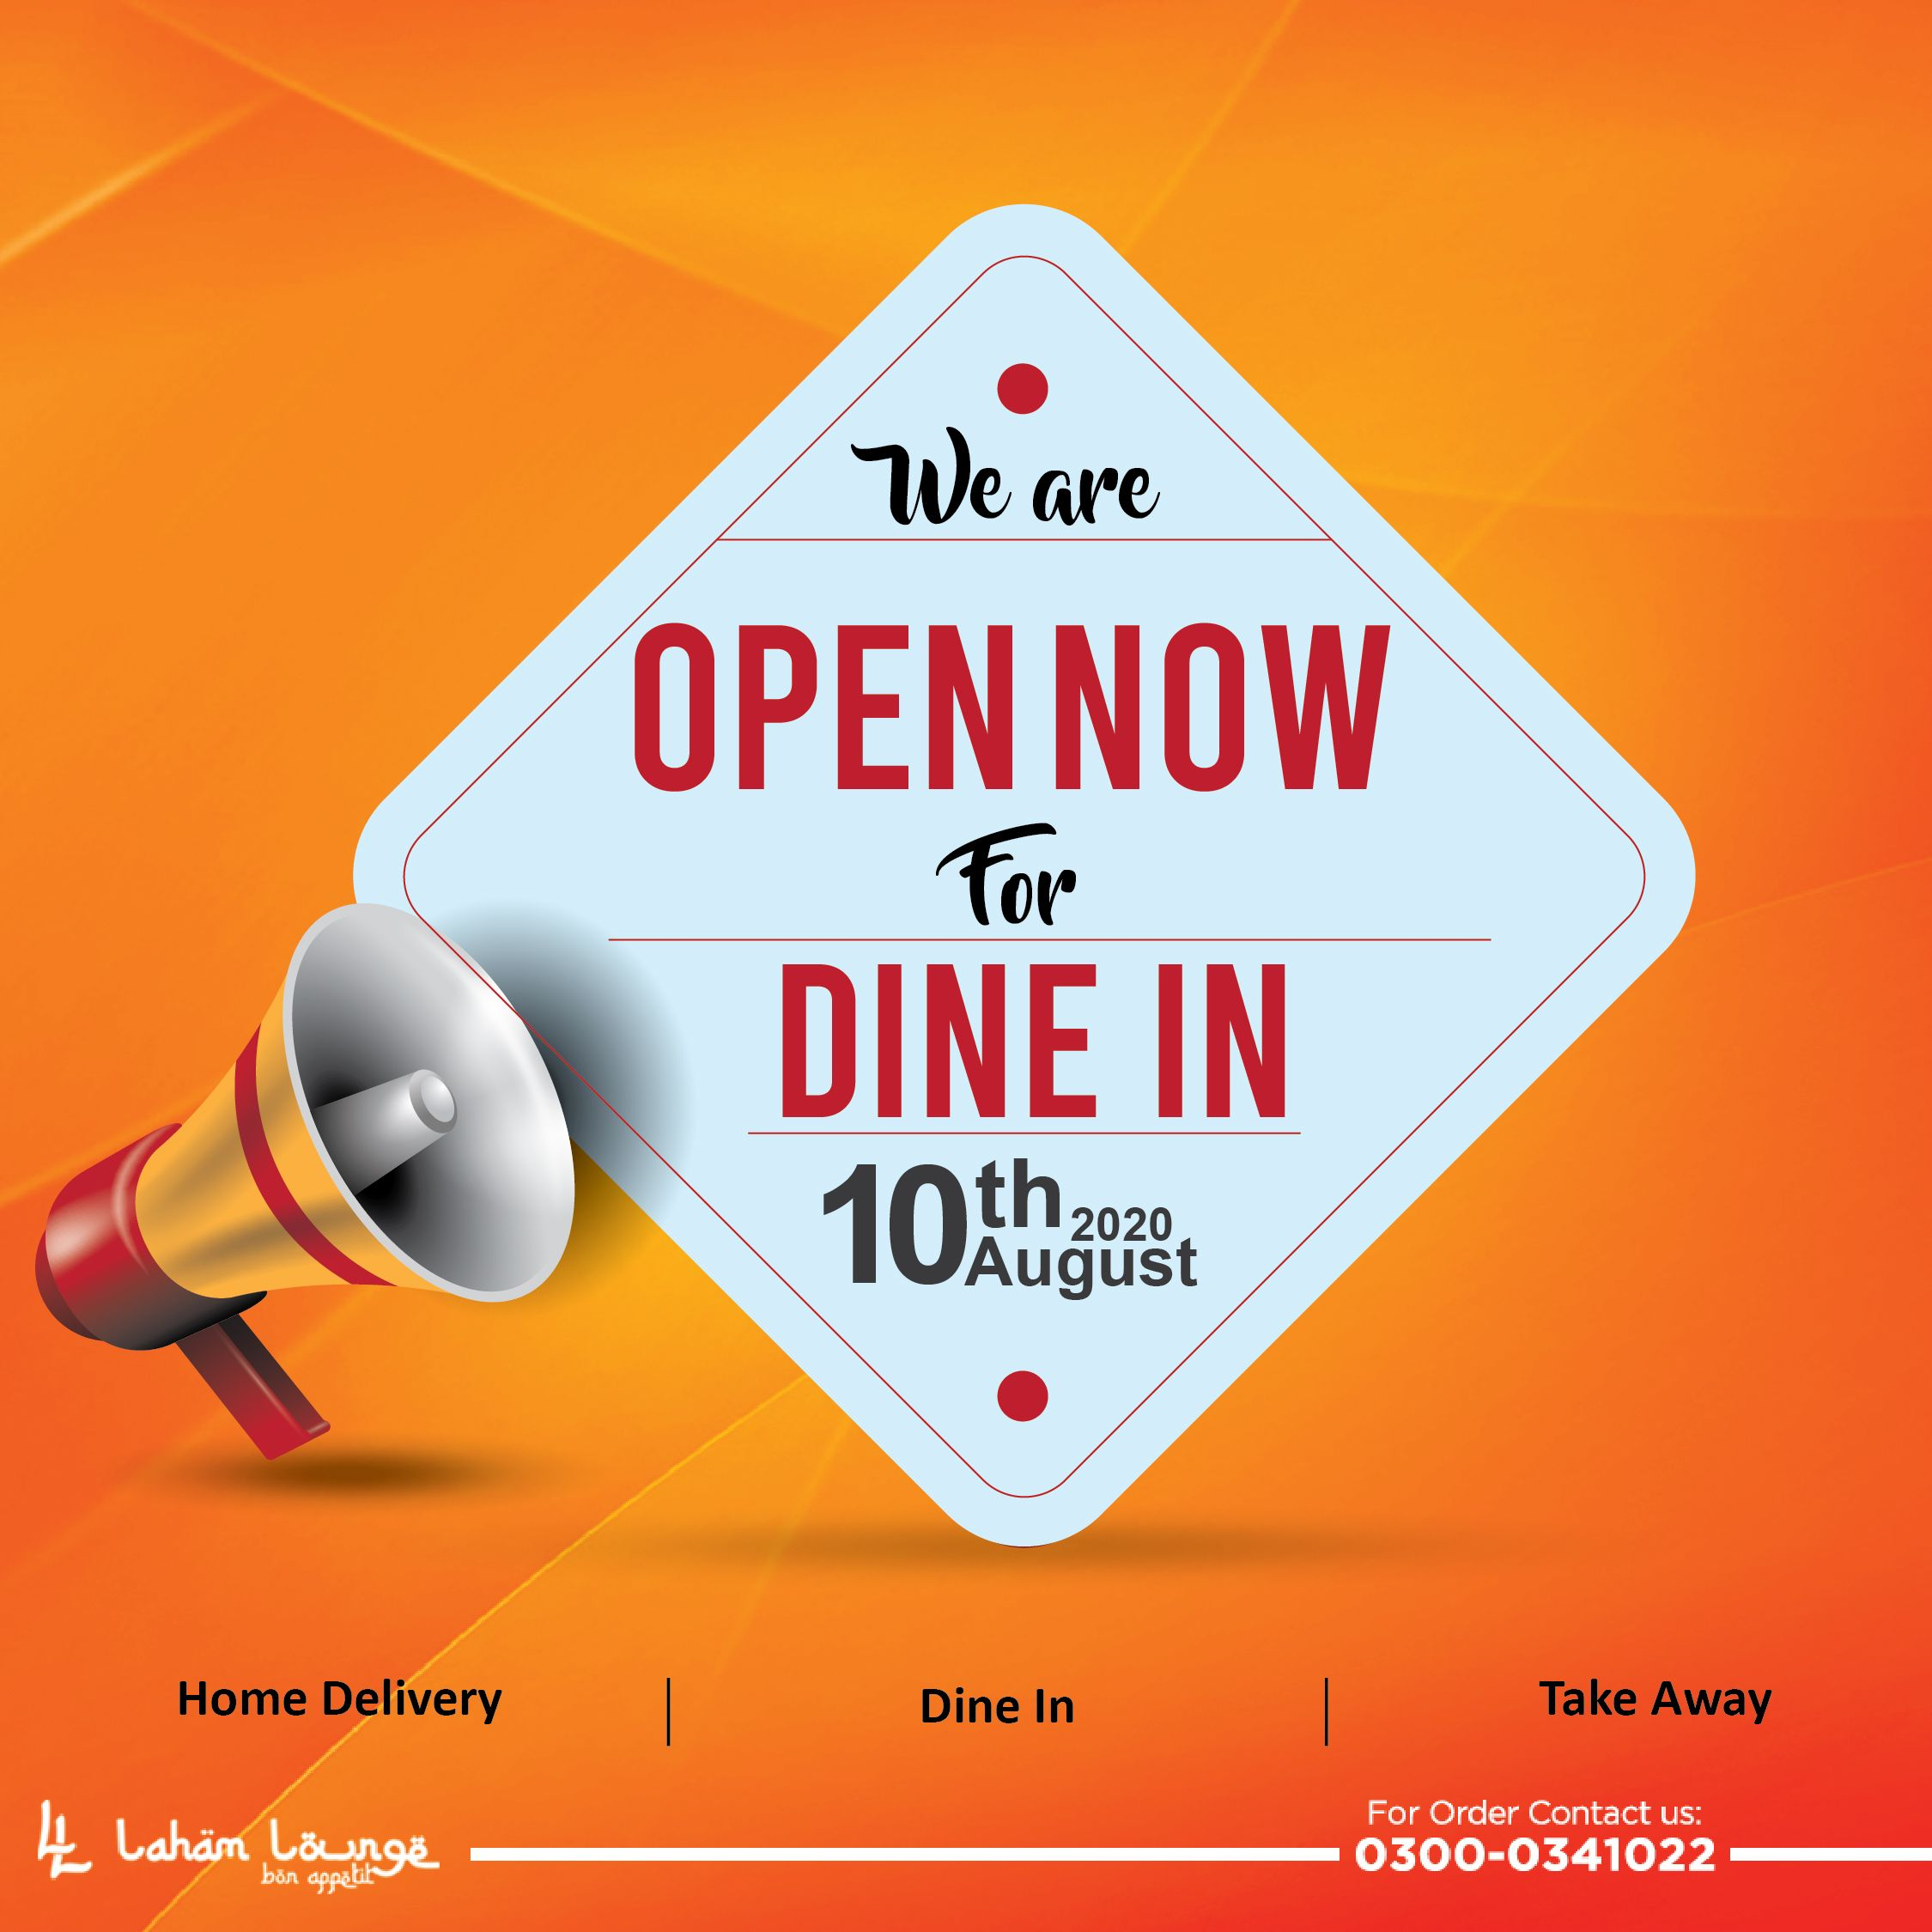 Laham Lounge Restaurant Is Open Now For Dine In Order Food Food Delivery Dining